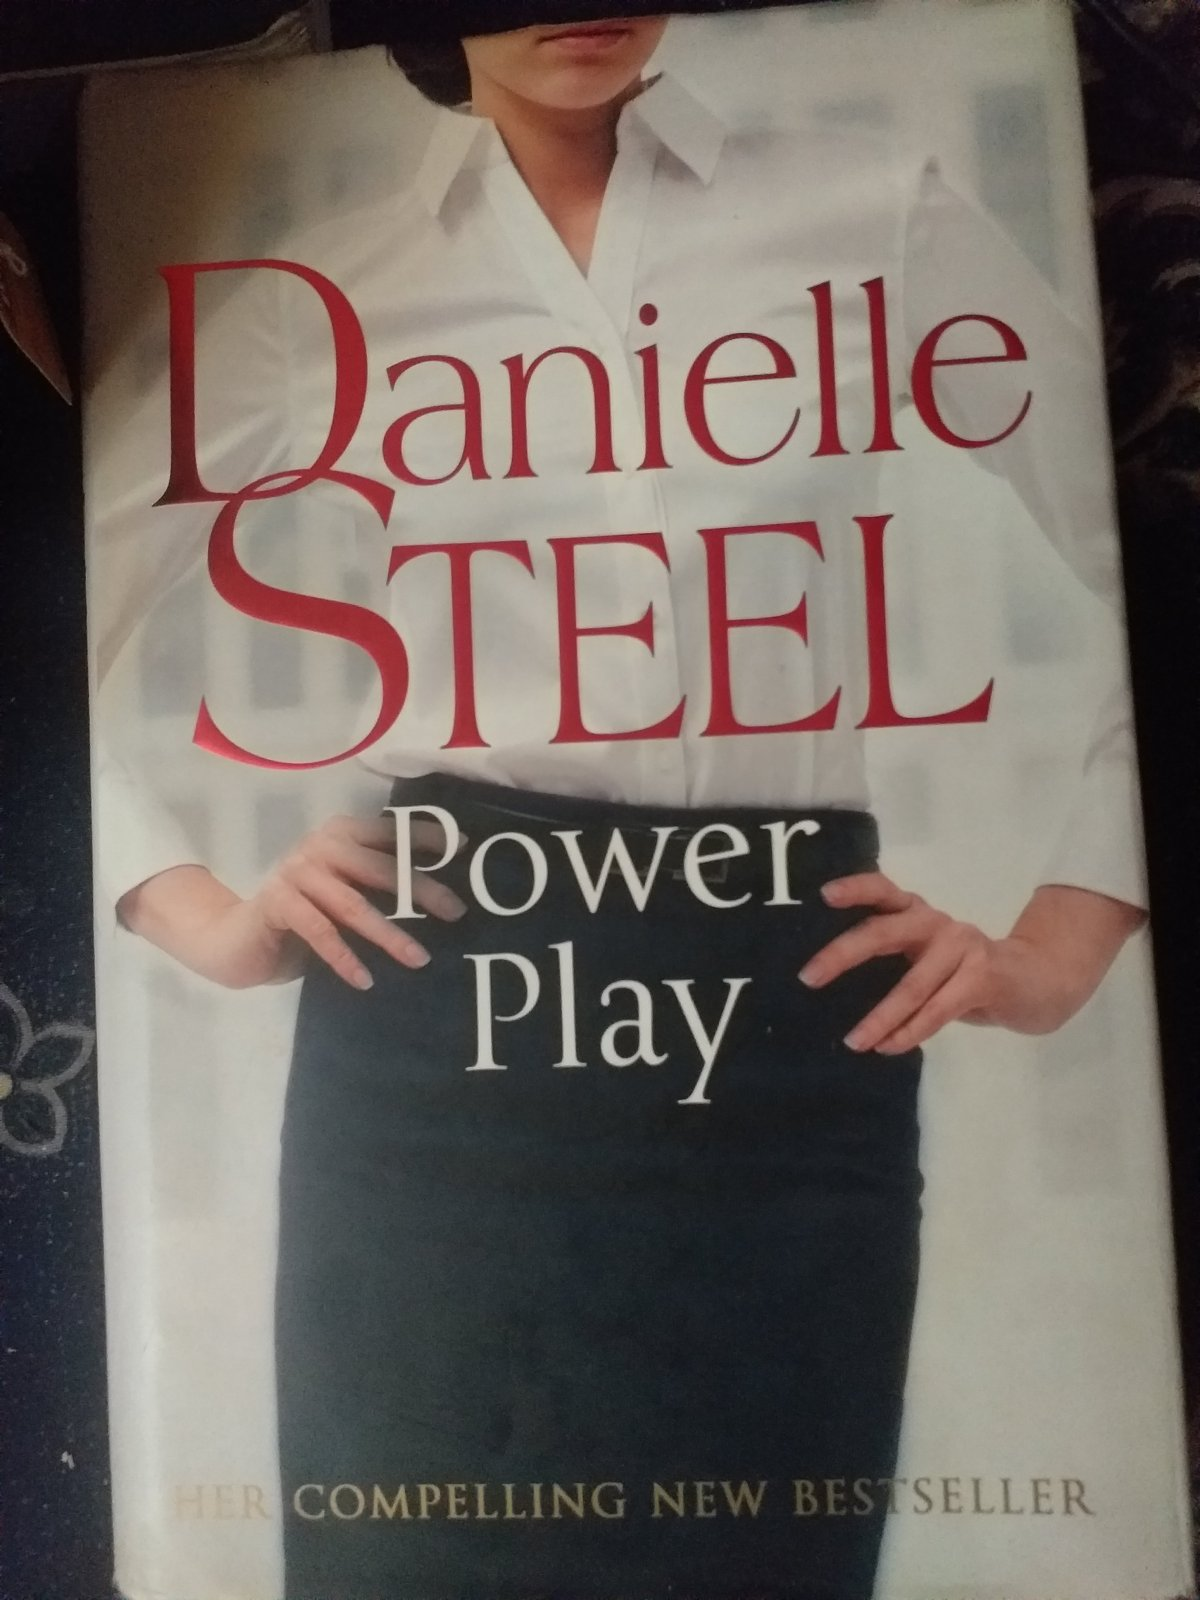 Power Play: A Tale of two distinct characters in a Familiarworld.